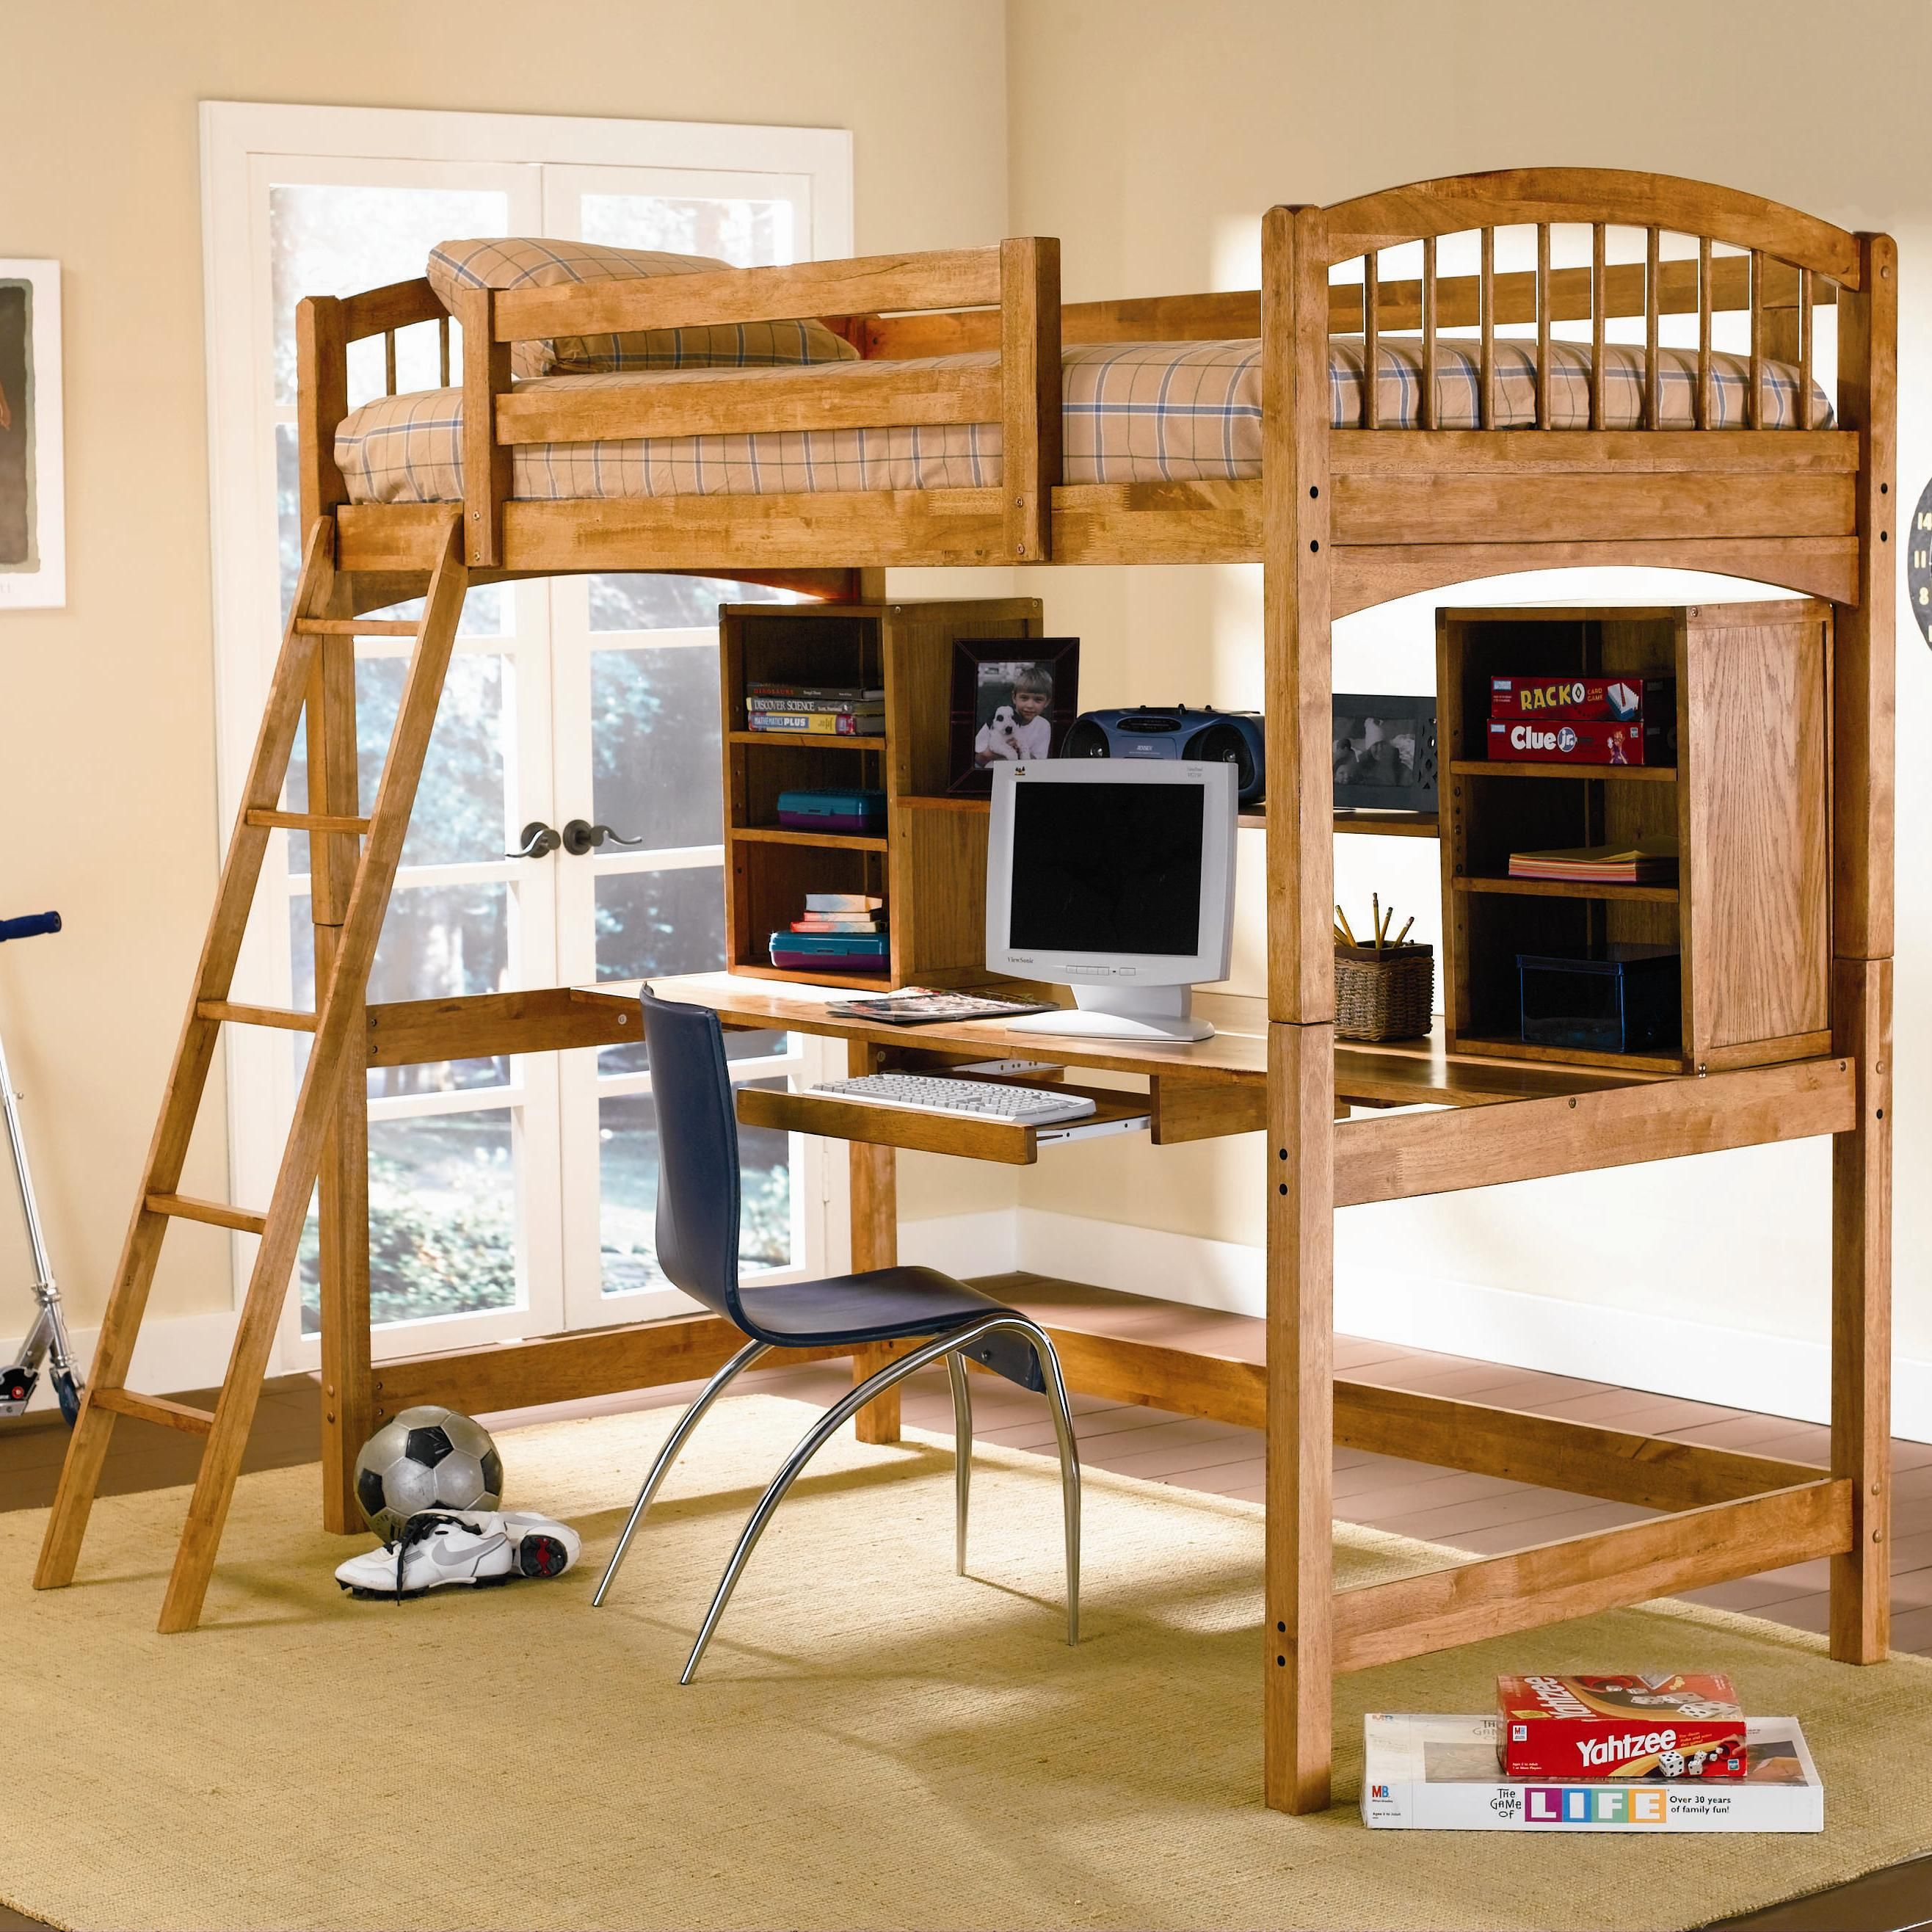 Brown Loft Bed Wooden With Chair And Computer Loft Bed